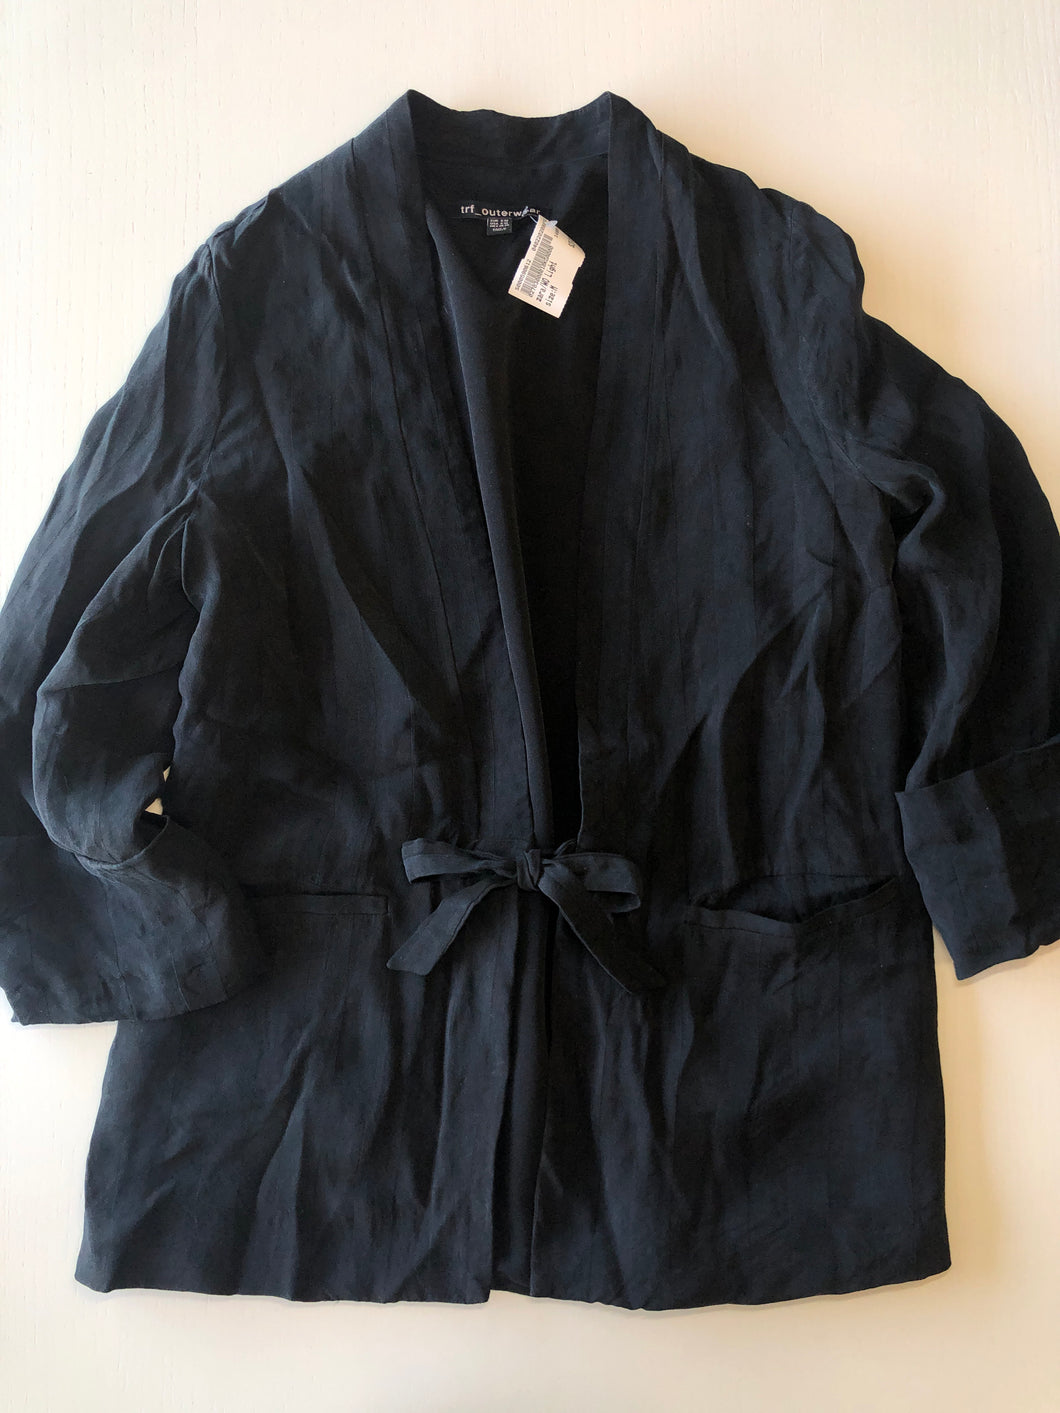 Gently Used Women's Zara Jacket Size S/M